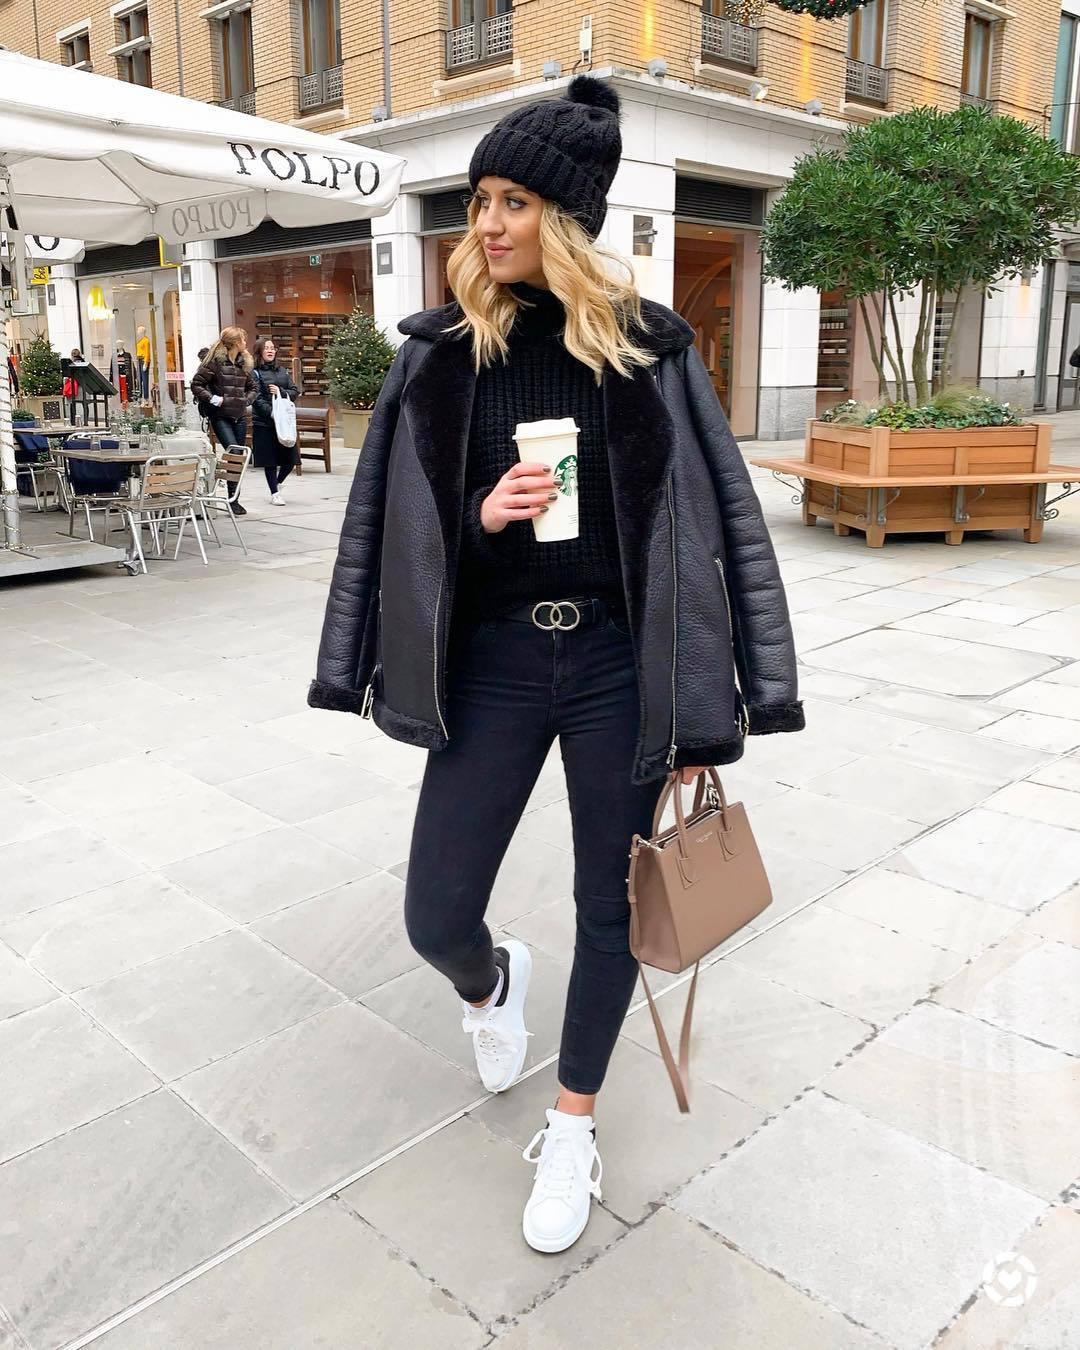 jacket aviator jacket black jacket white sneakers trainers skinny jeans black belt shoulder bag black sweater black beanie